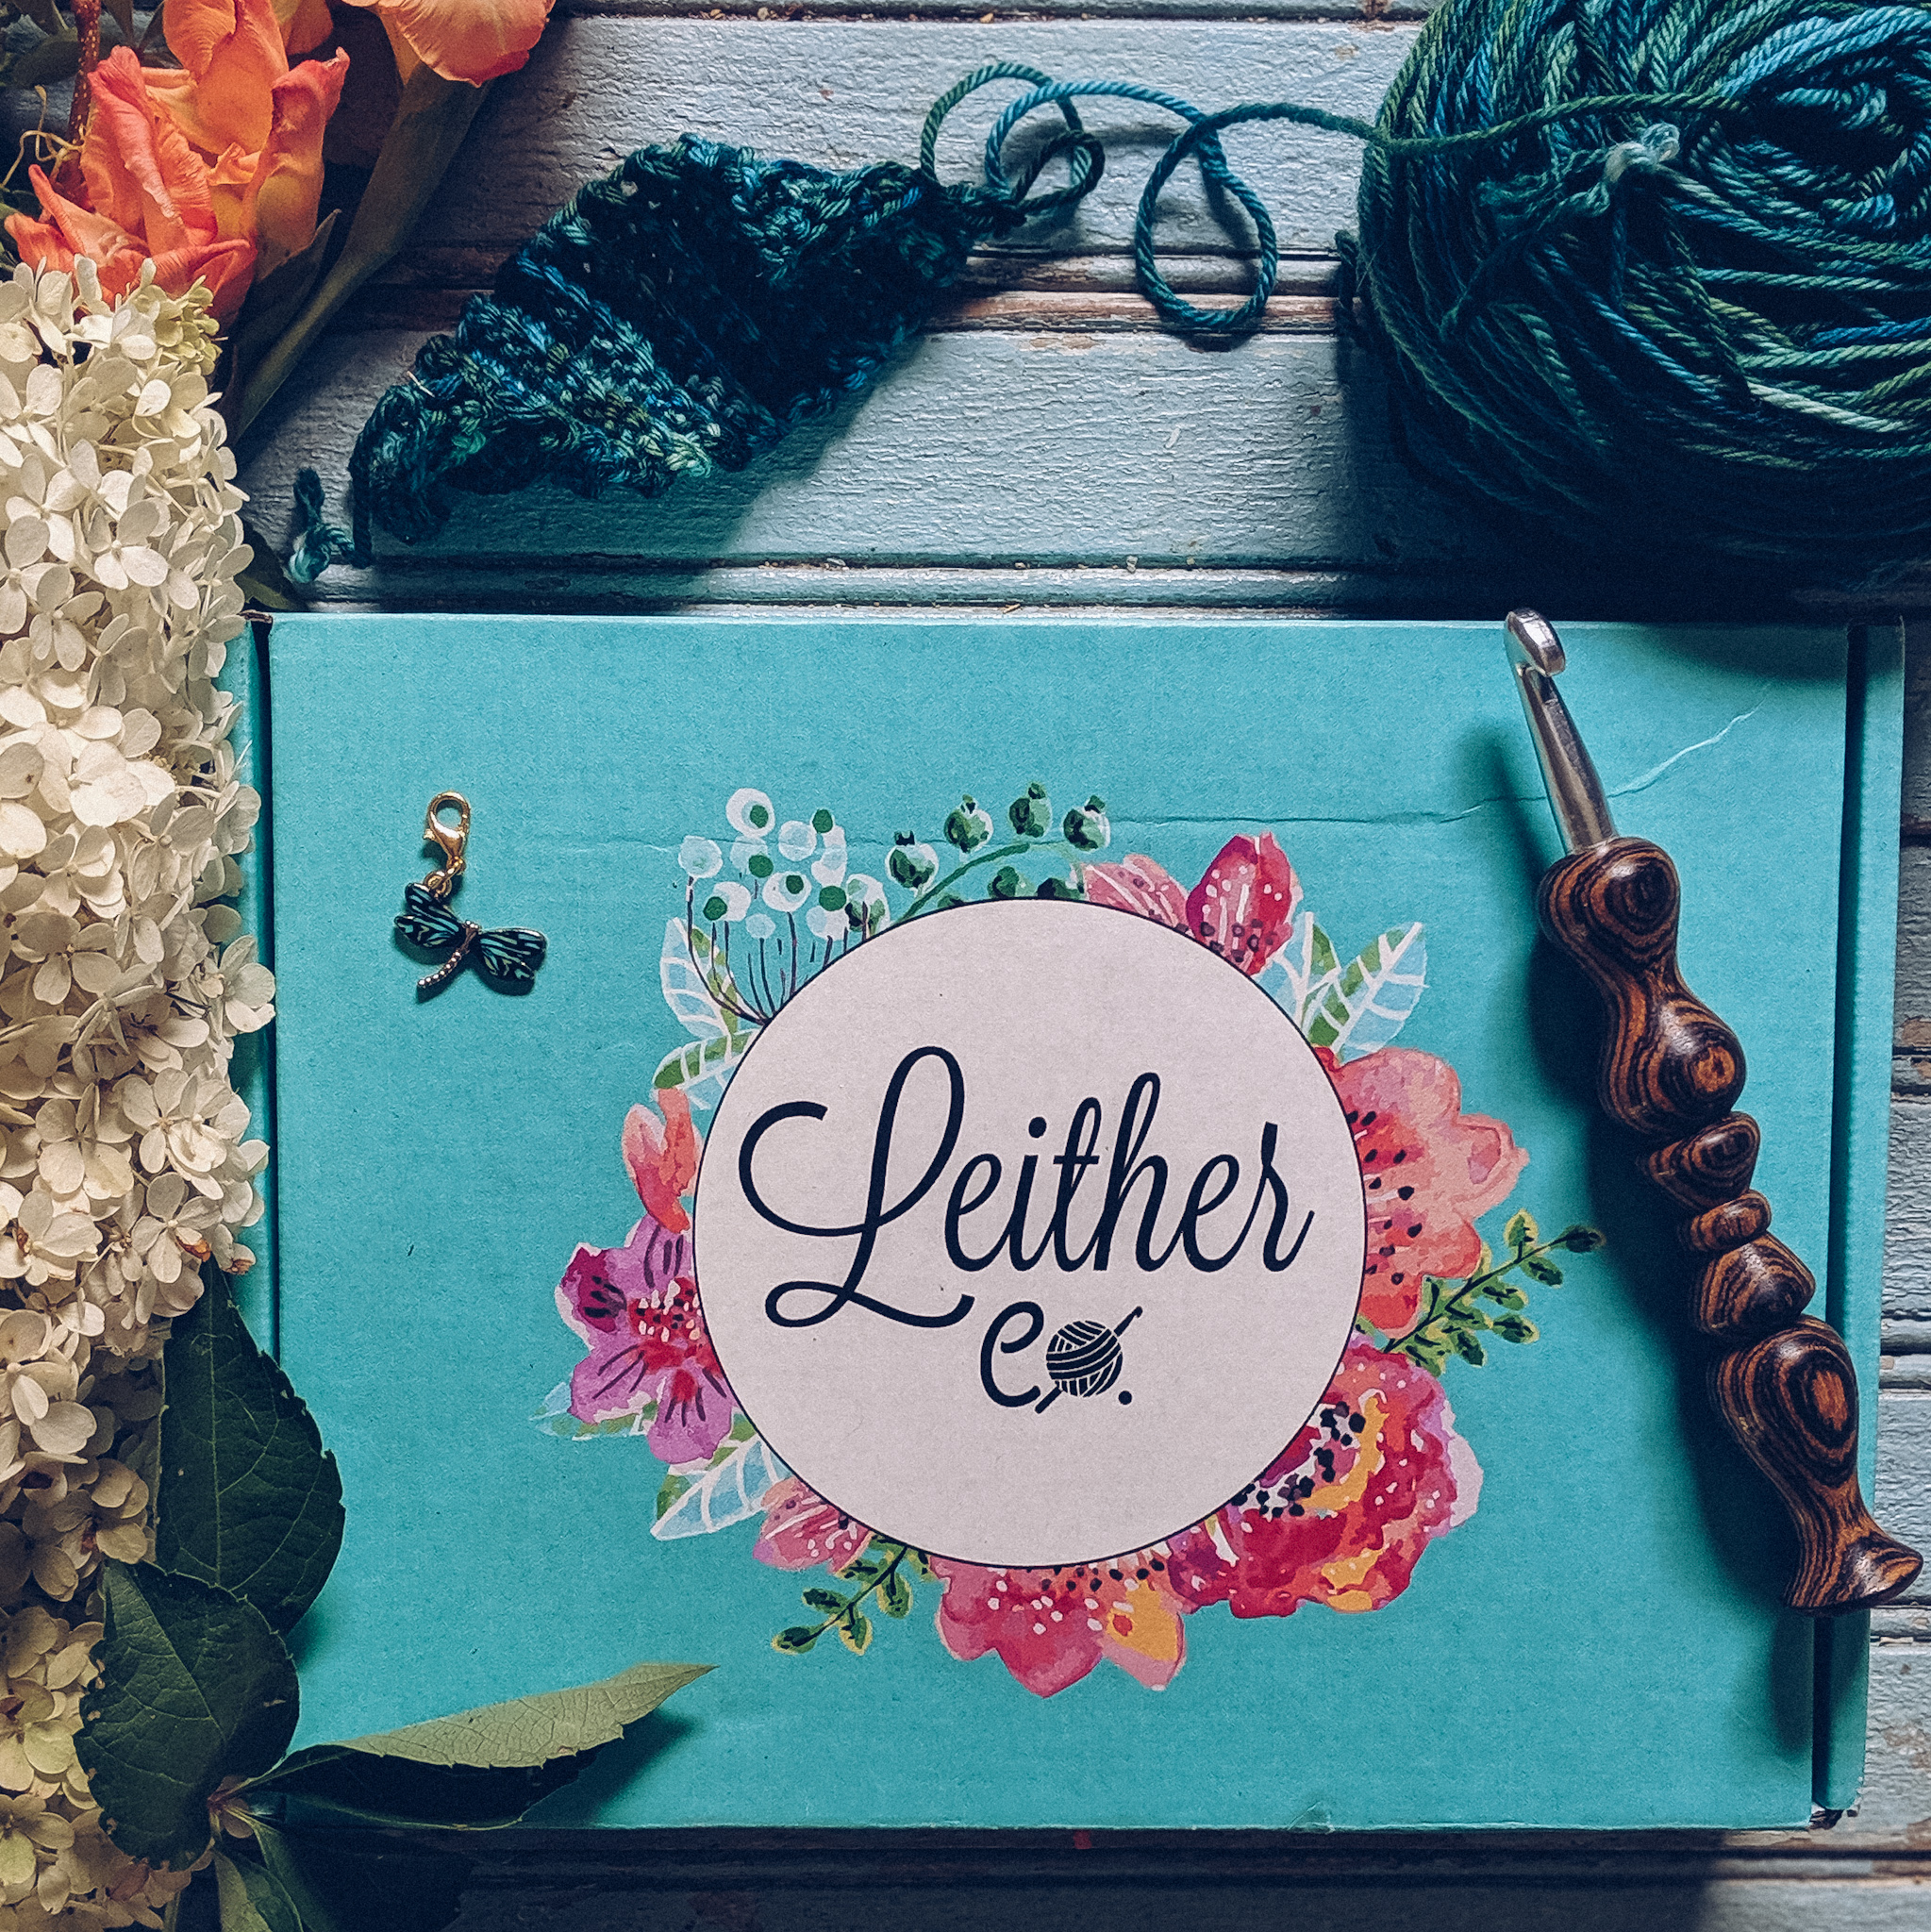 Leither Co. Crochet Subscription Box Review: read for all the details! #freecrochetpatterns #crochetsupplies #crochet